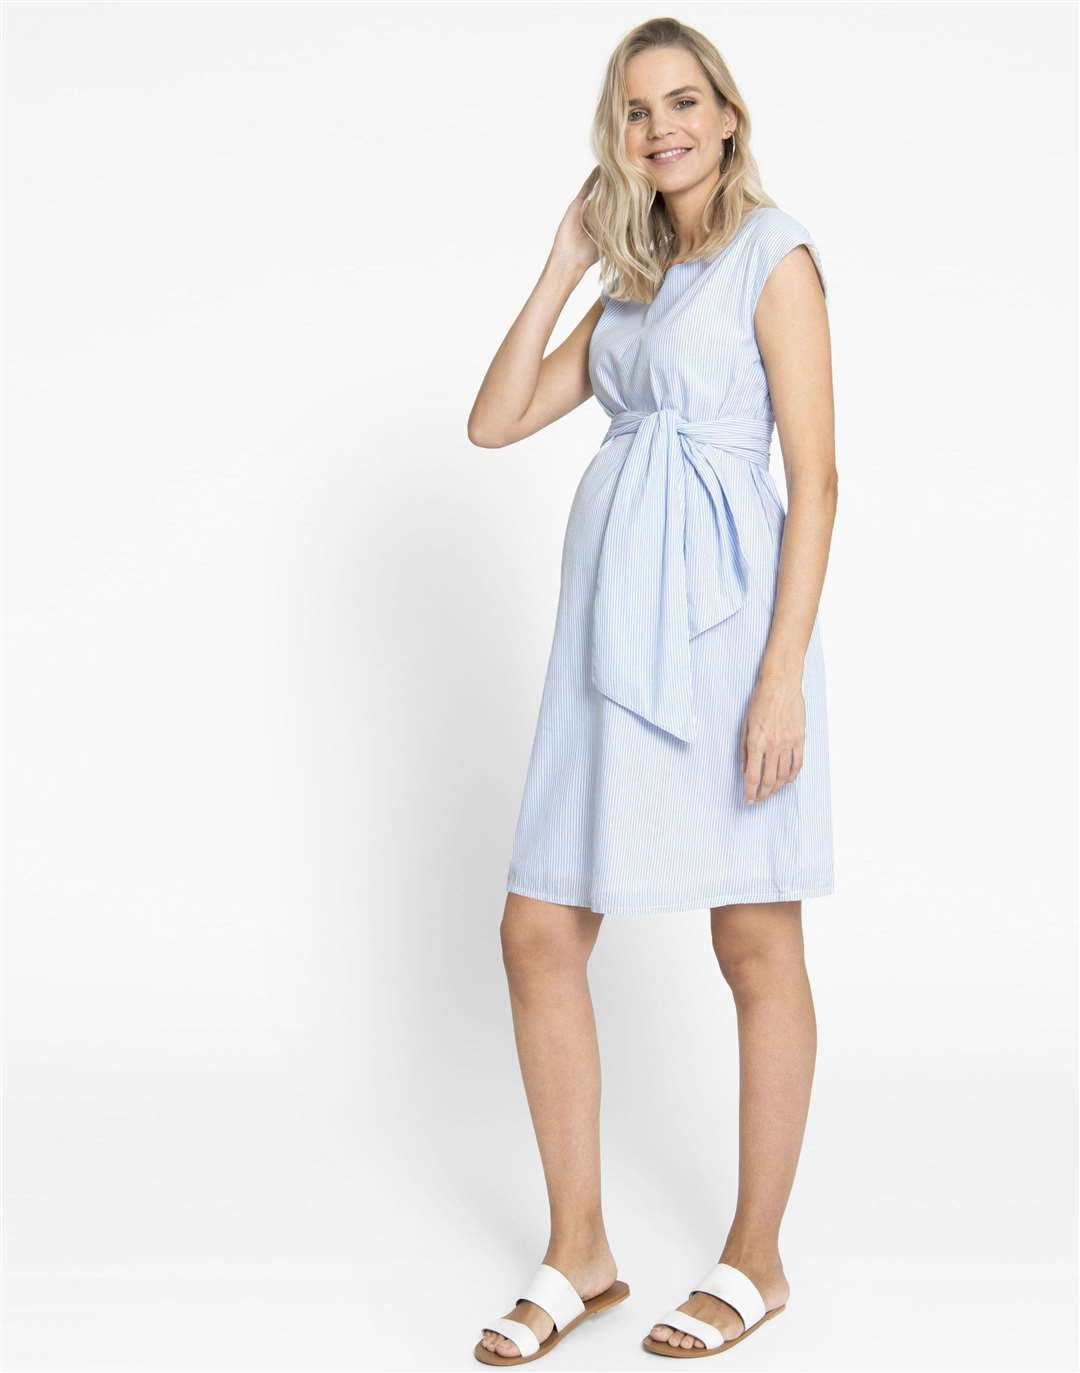 Blue pinstripe dress from JoJo Maman Bebe